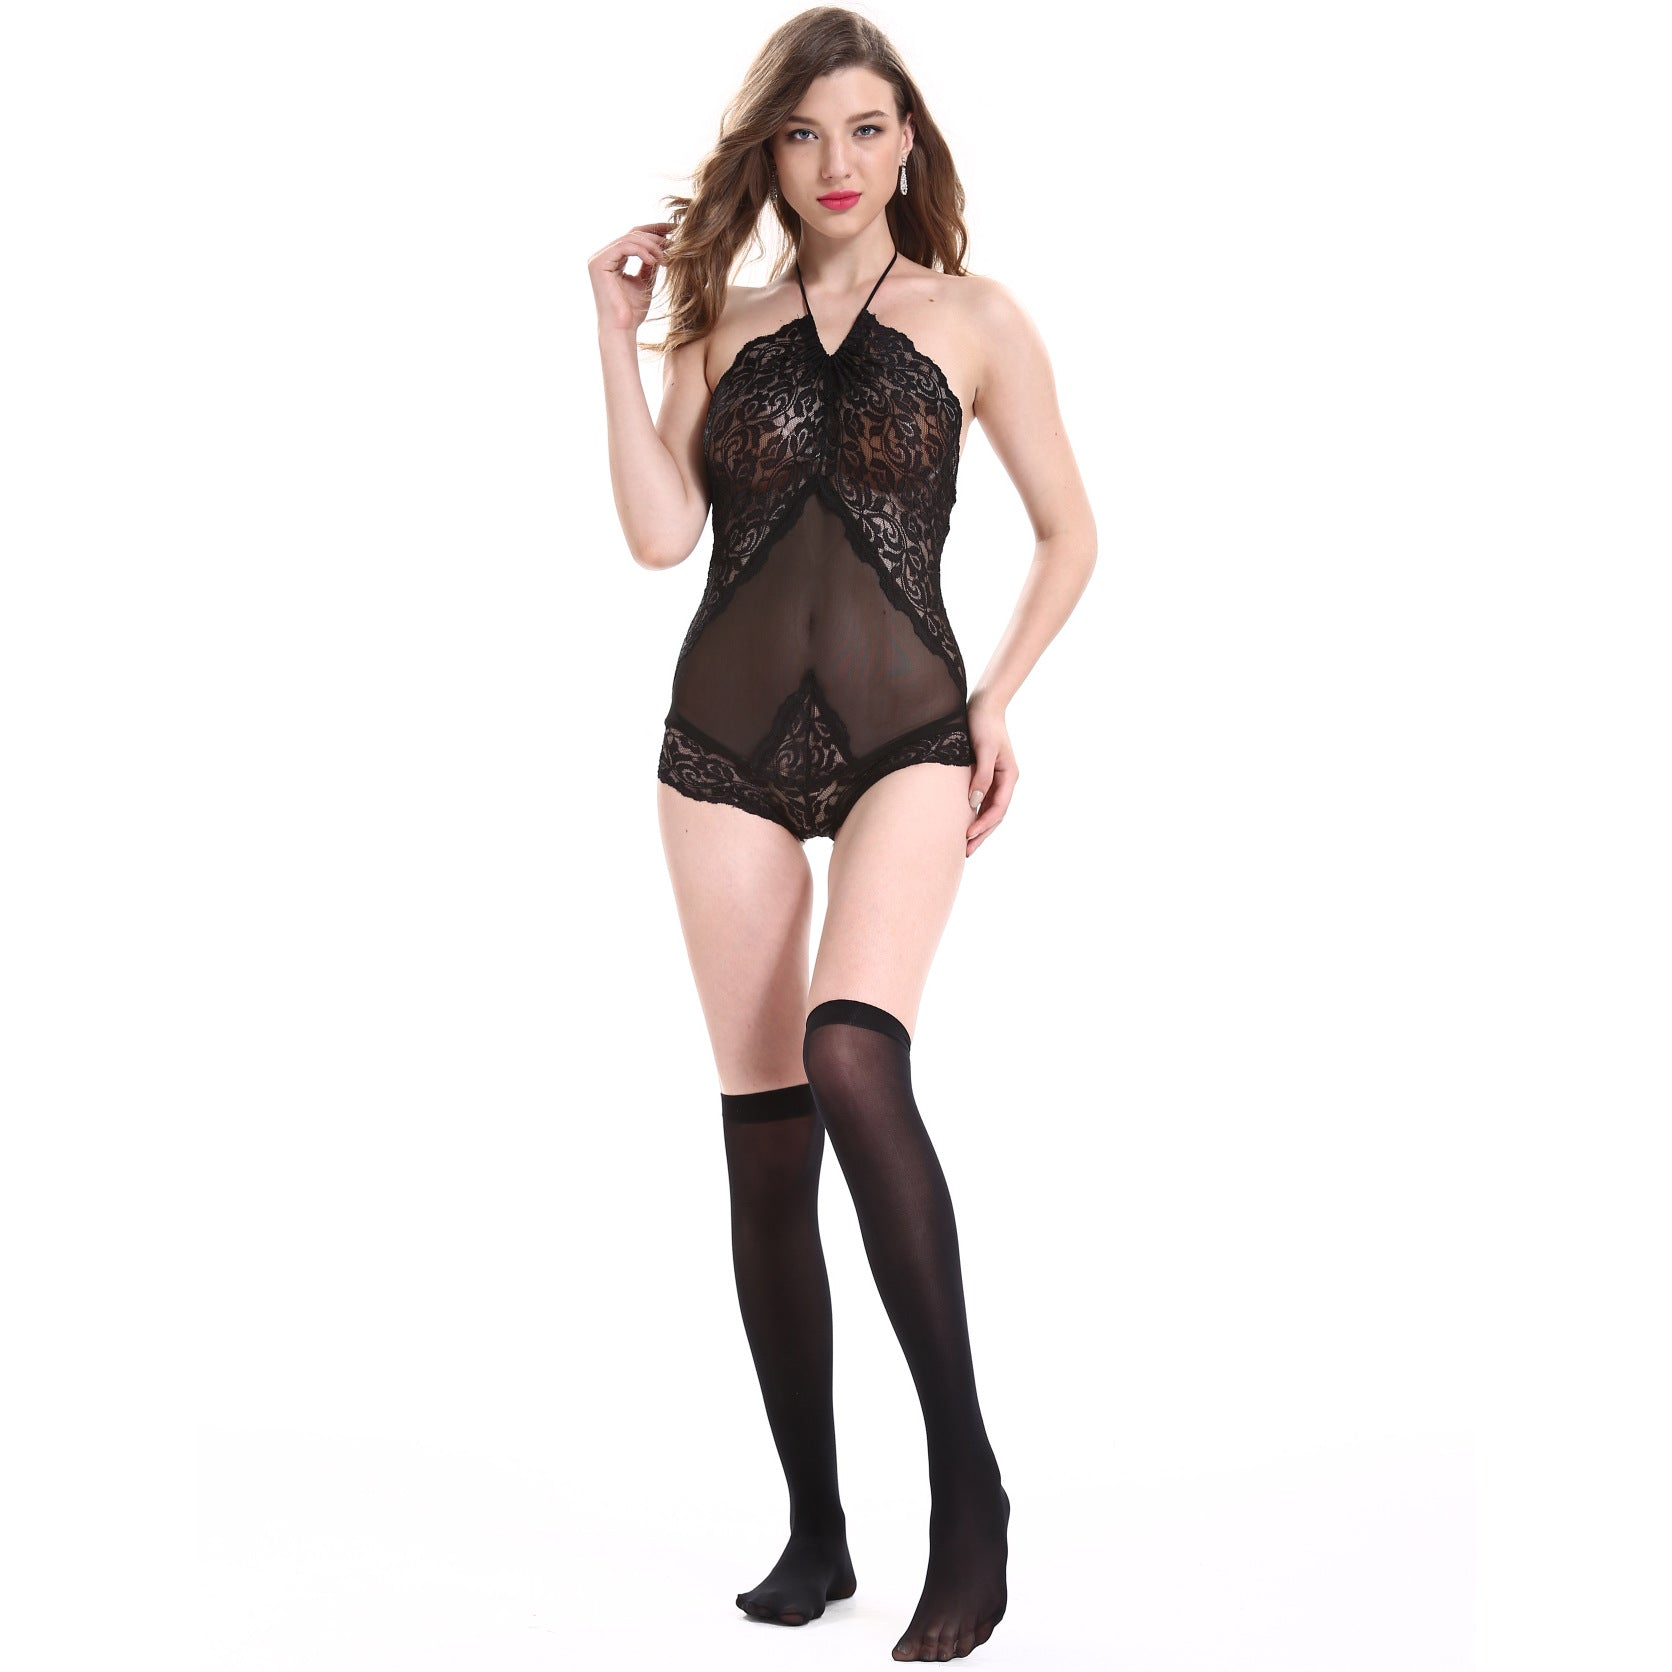 Women's Sexy Lace Lingerie Women's One Piece Perspective Pajamas